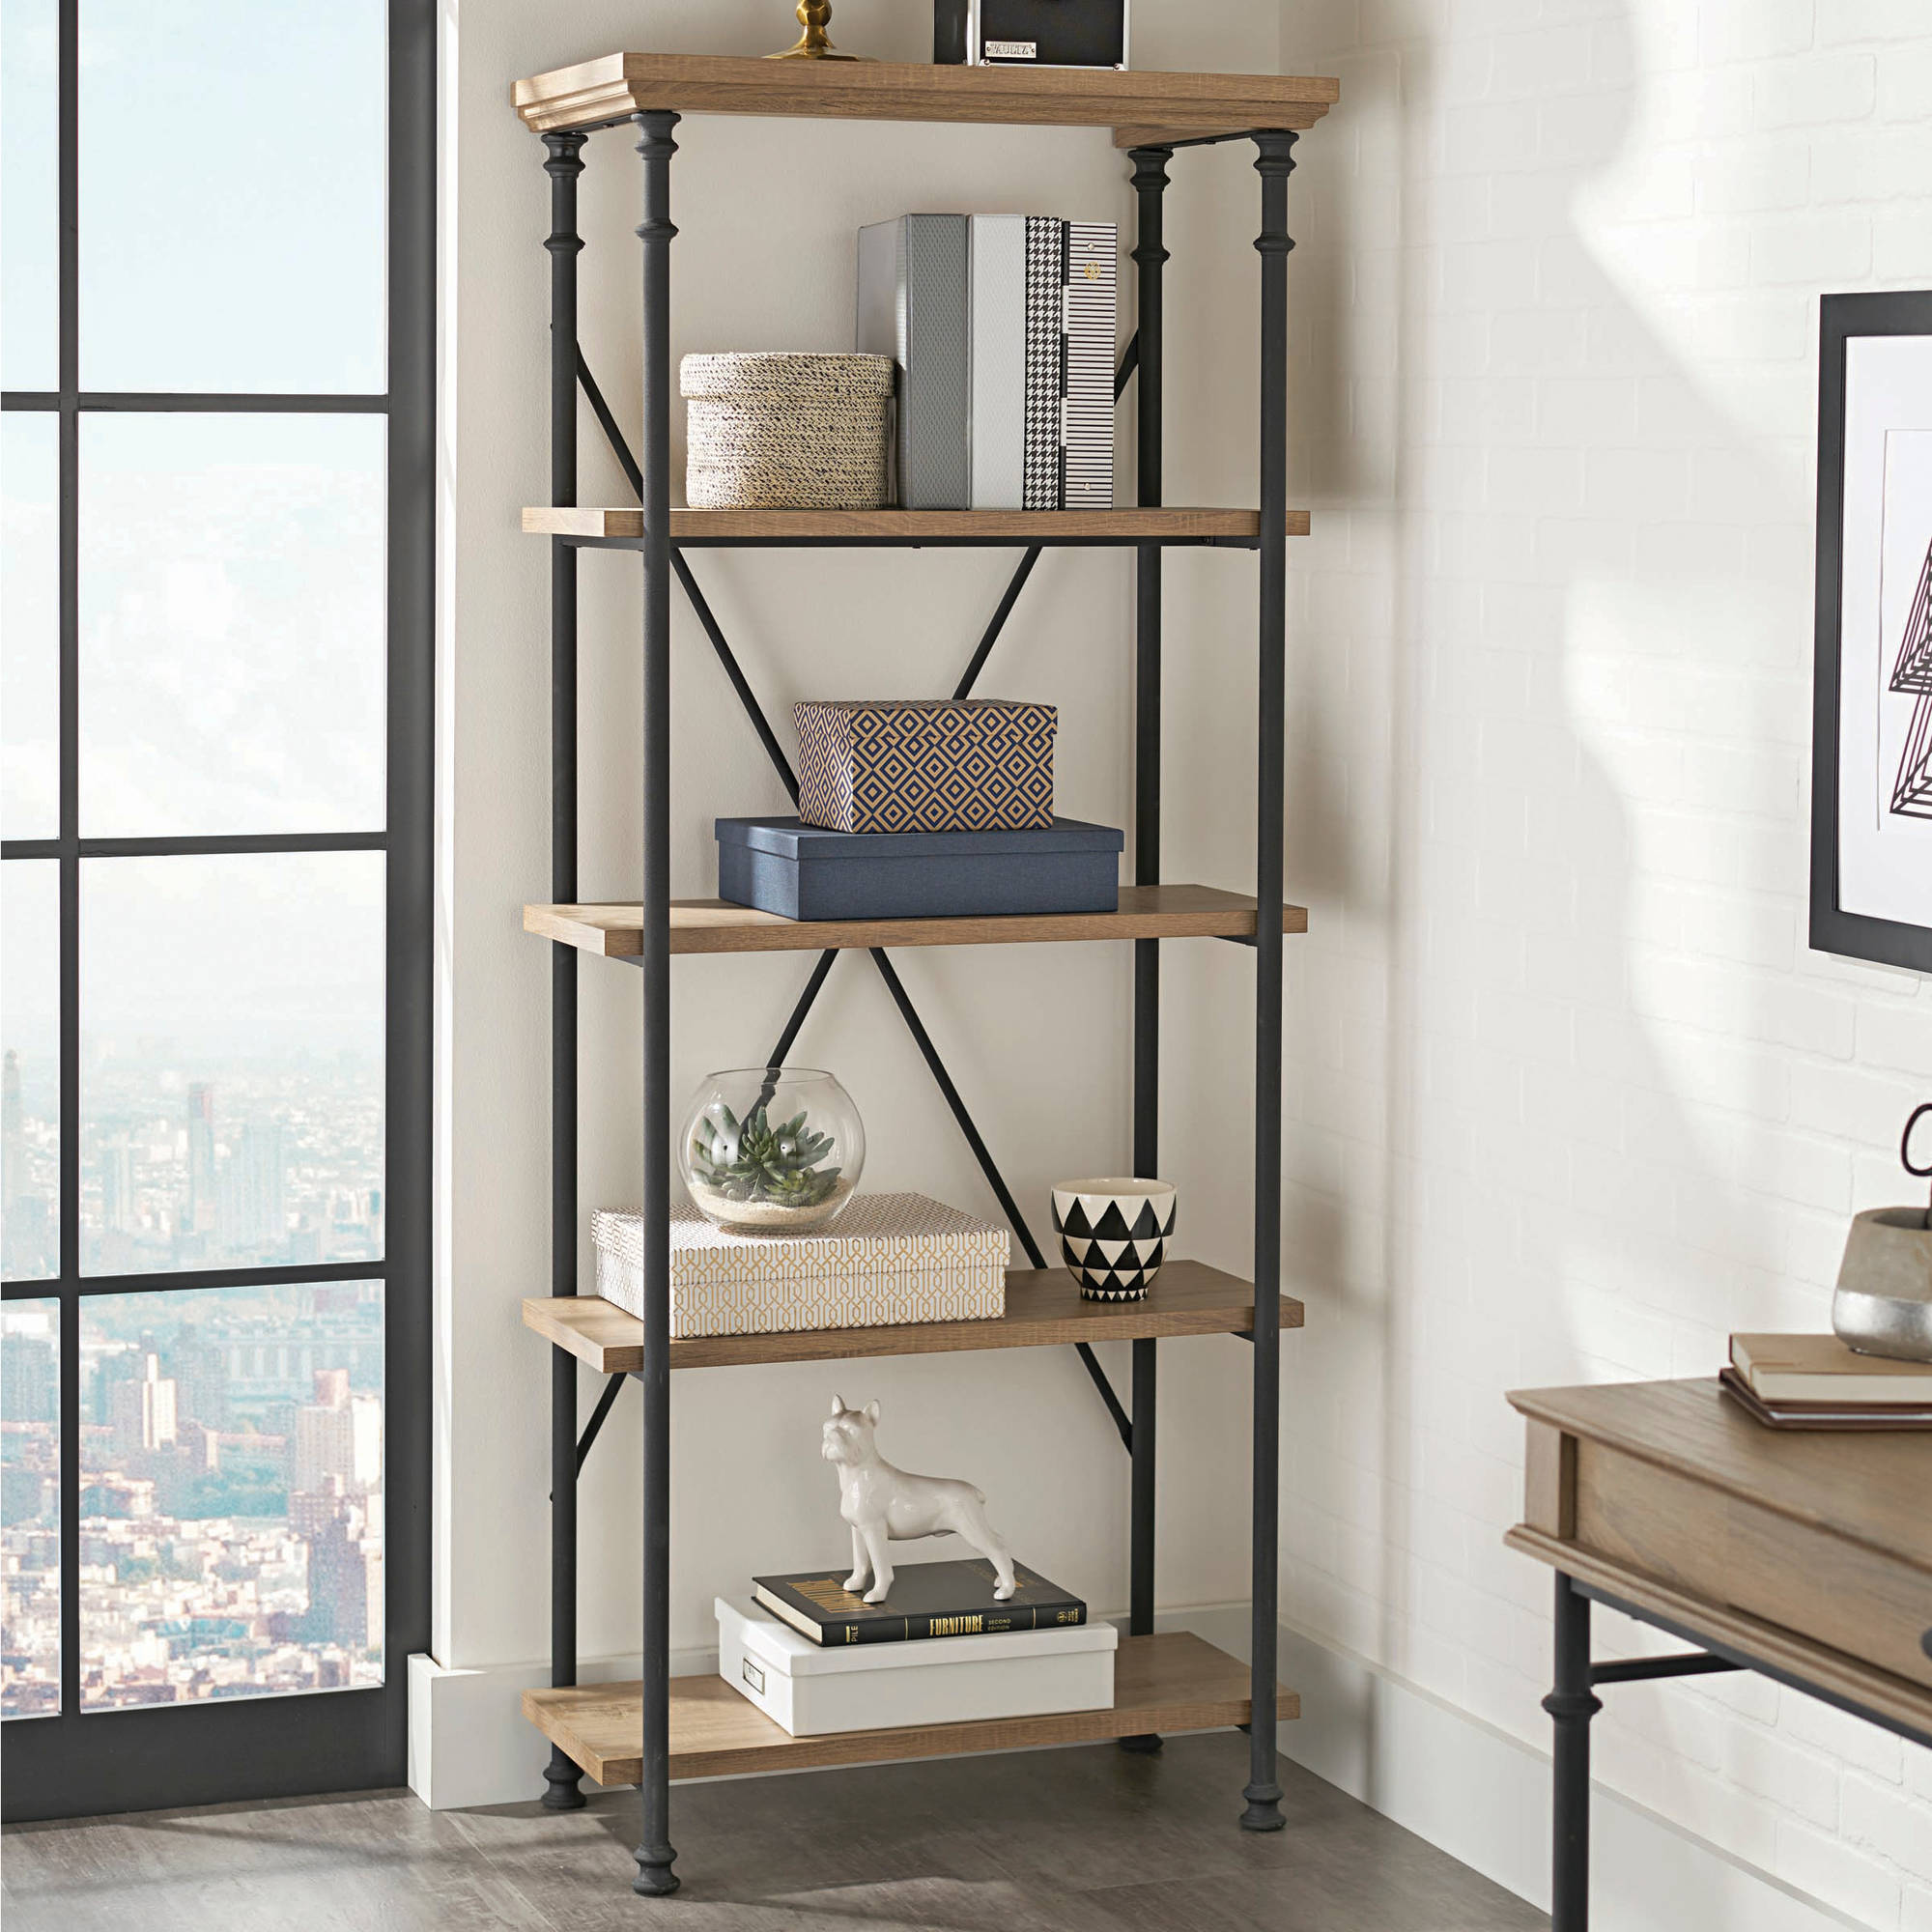 Better Homes and Gardens River Crest 5-Shelf Bookcase, Rustic Oak Finish